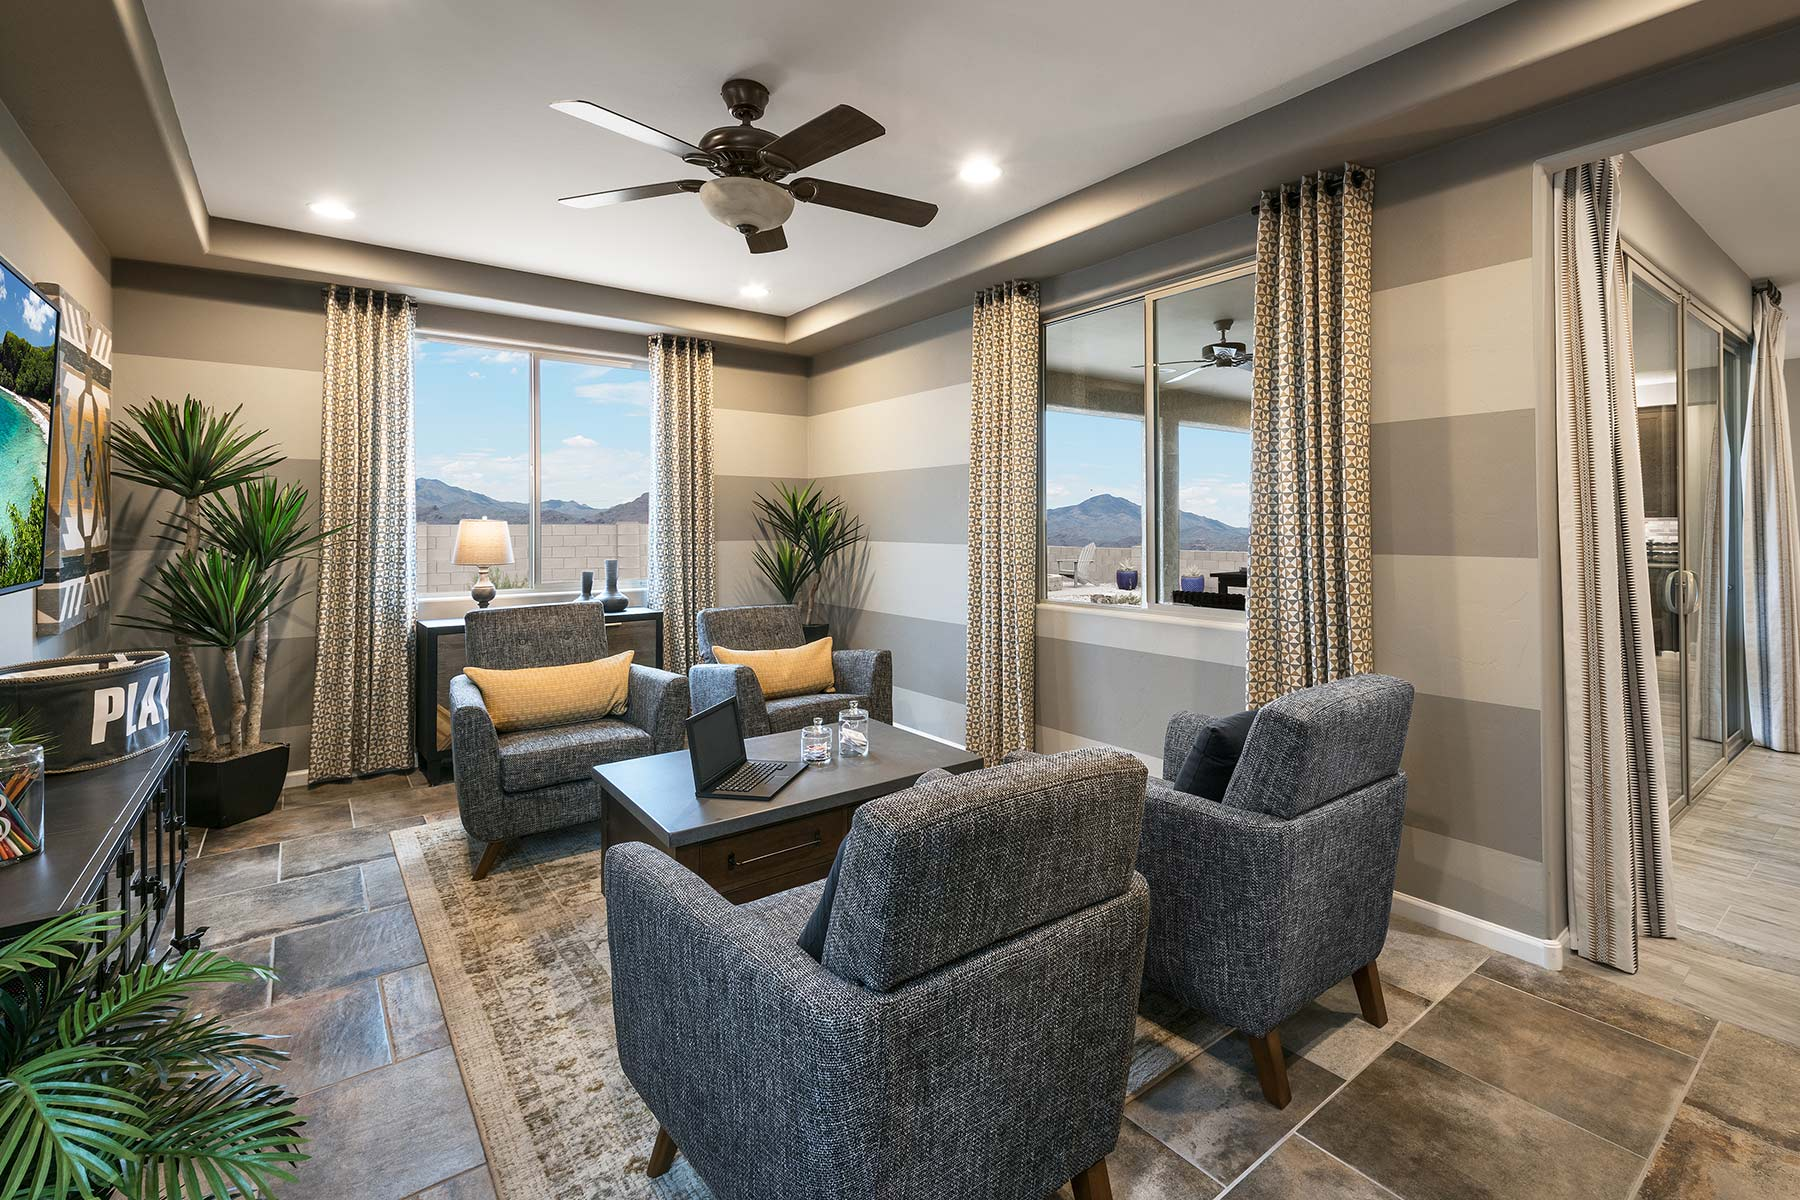 Agave Plan Study Room at Desert Oasis at Twin Peaks in Marana Arizona by Mattamy Homes